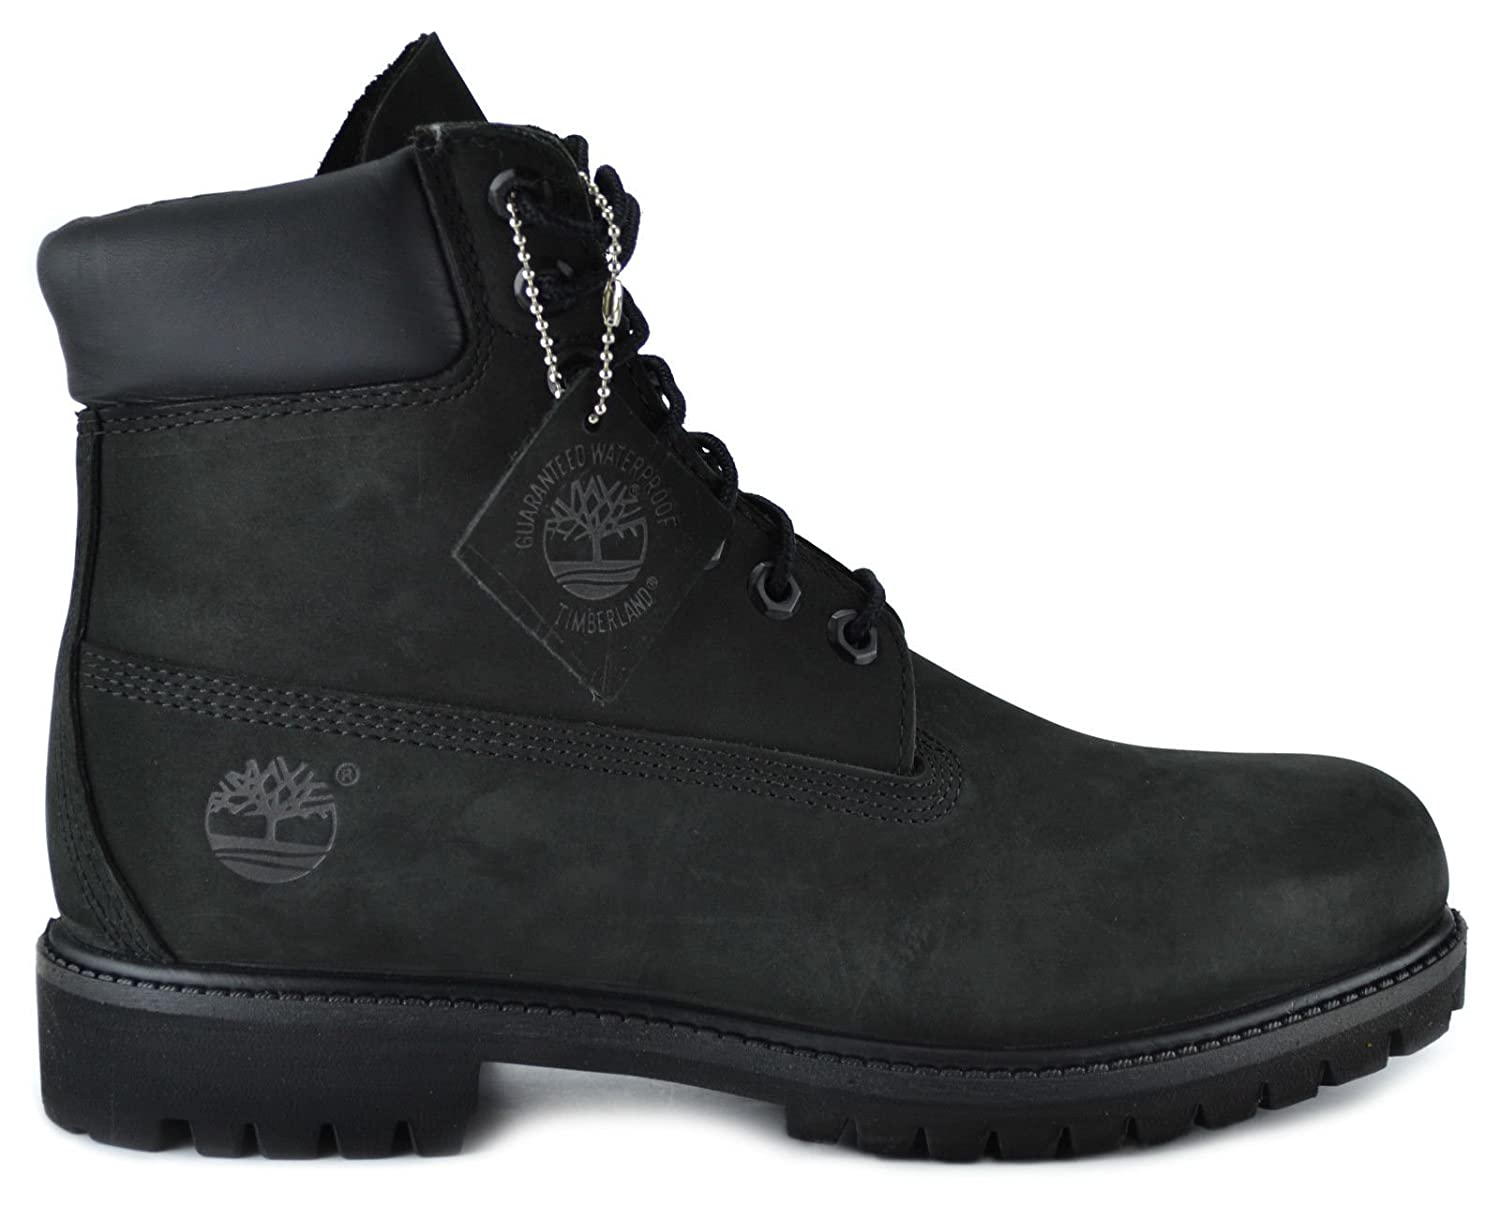 new concept 94cd2 f4691 Amazon.com   Timberland Men s 6-Inch Basic Waterproof Boots Black 10073    Motorcycle   Combat